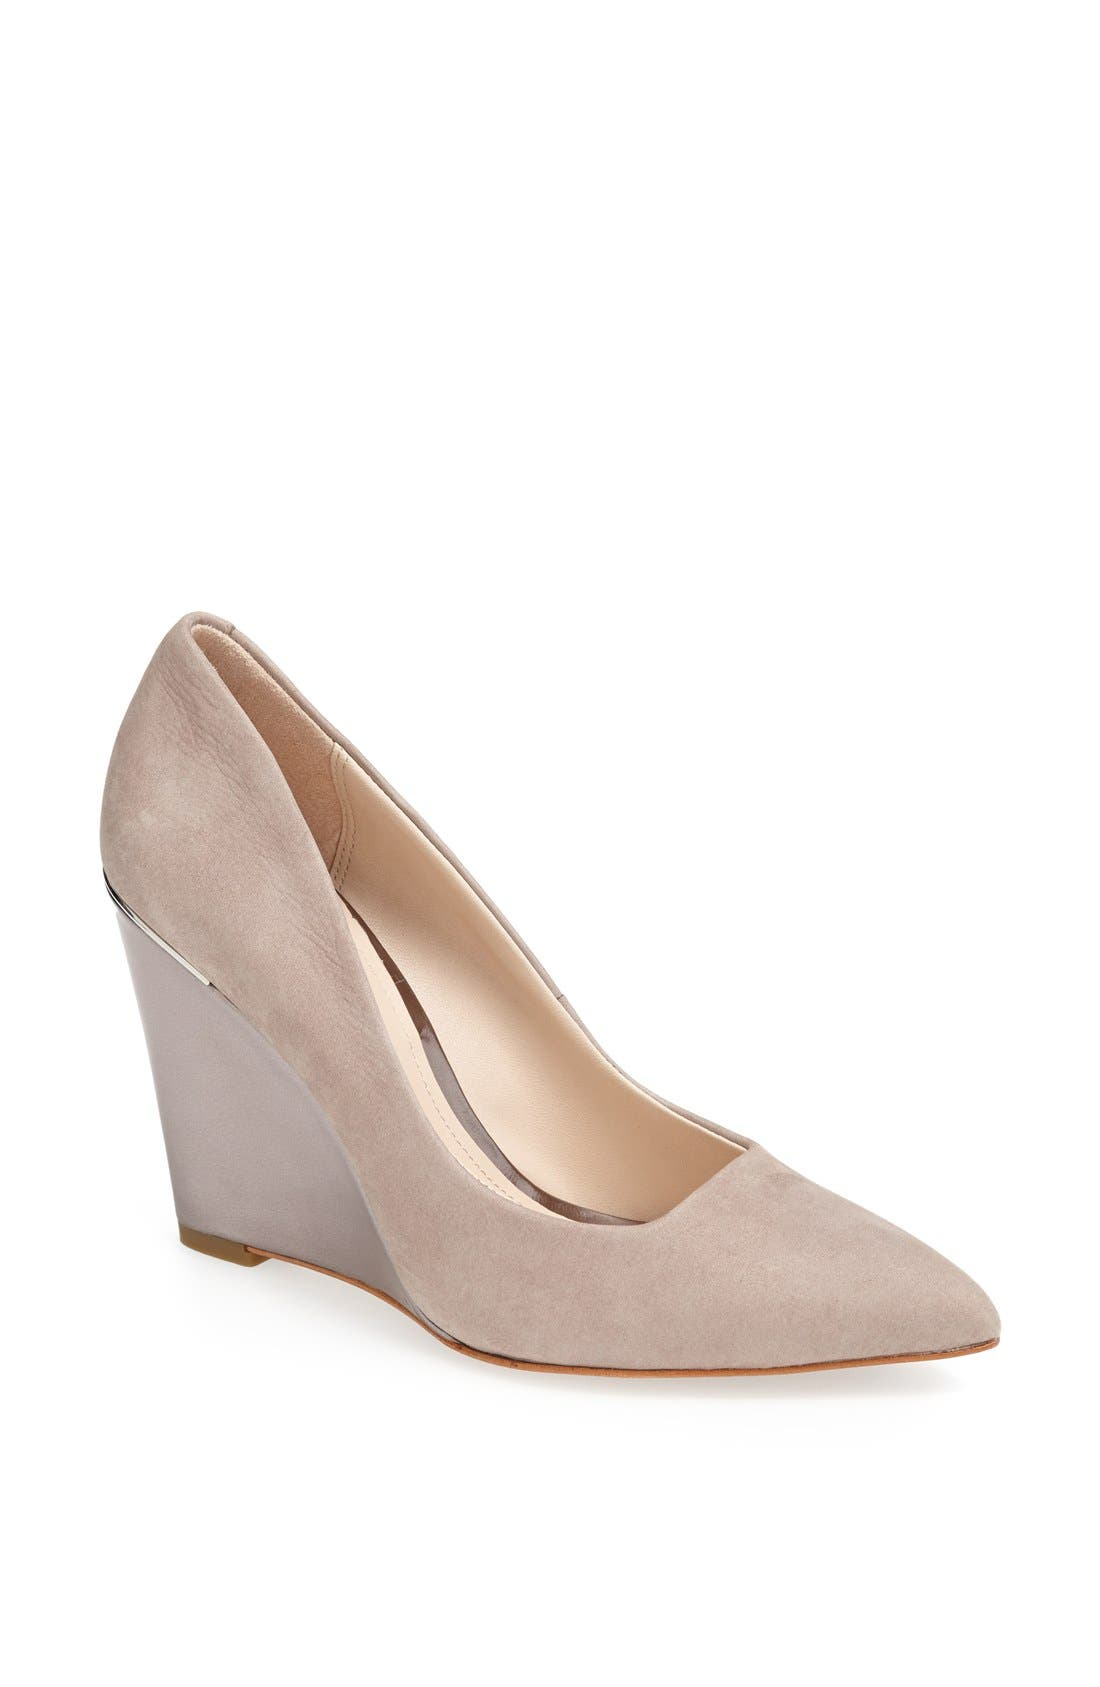 Alternate Image 1 Selected - COACH 'Orchard' Wedge Pump